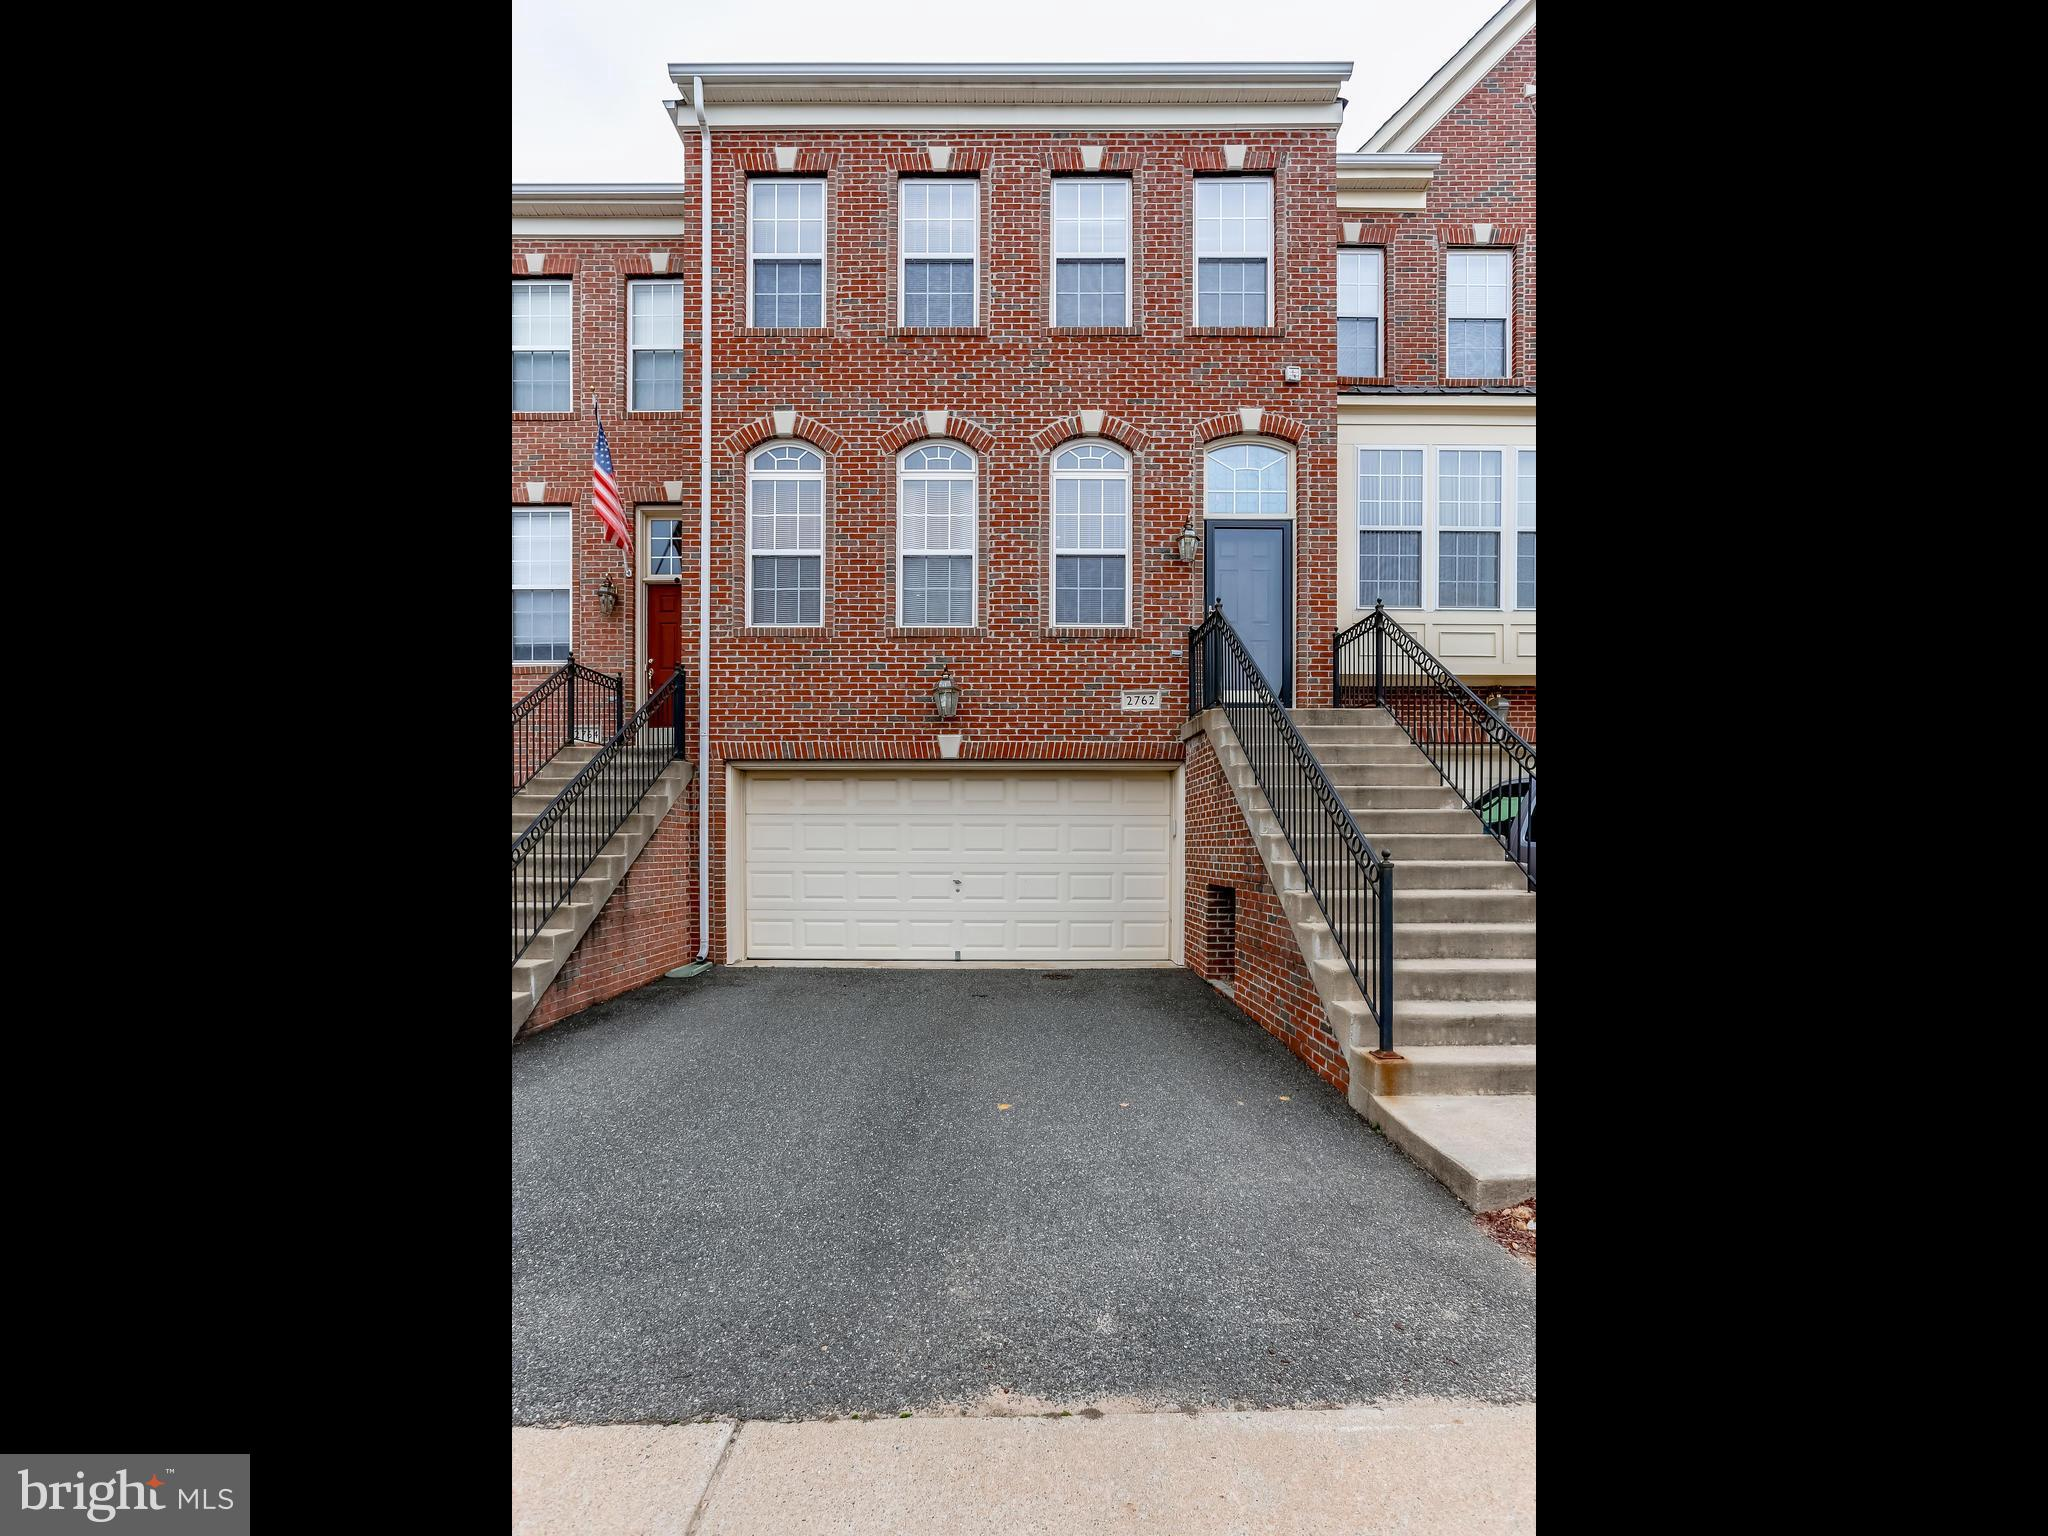 Beautiful Maintained 3 level Brick Front Townhome. This home features 3 Bedrooms with 3.5 baths. Bright kitchen with fireplace, hardwood floors and granite counters. Spacious dinning room with coffer ceiling. Master with walk-in closet and master bath. 2 car garage.  Amenities includes gym, outdoor and indoor pool, basketball court, tennis court and kids playground. Club house include movie room.